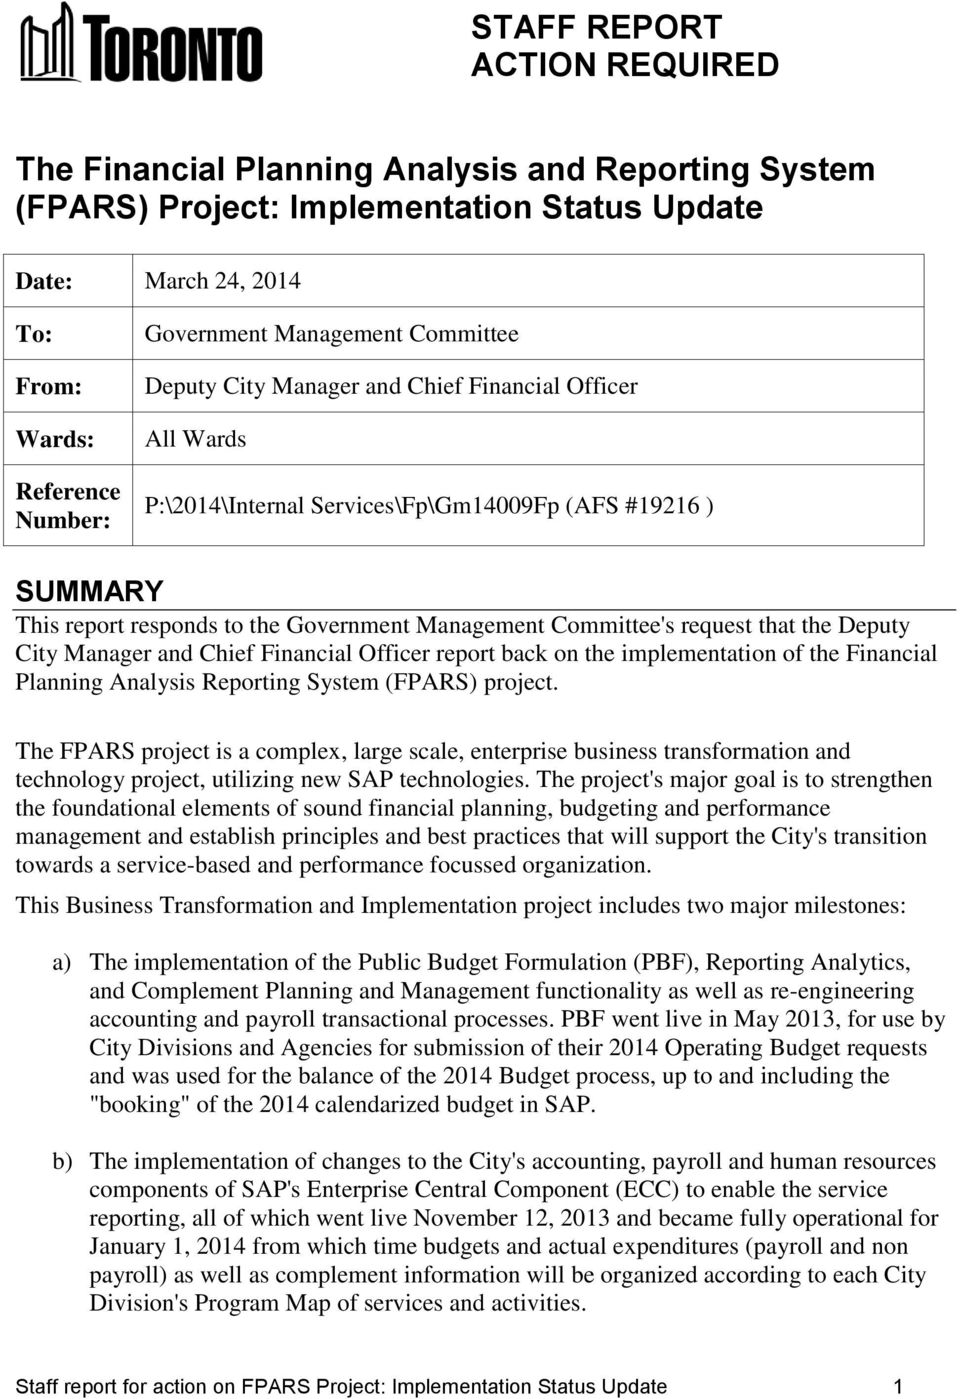 Committee's request that the Deputy City Manager and Chief Financial Officer report back on the implementation of the Financial Planning Analysis Reporting System (FPARS) project.